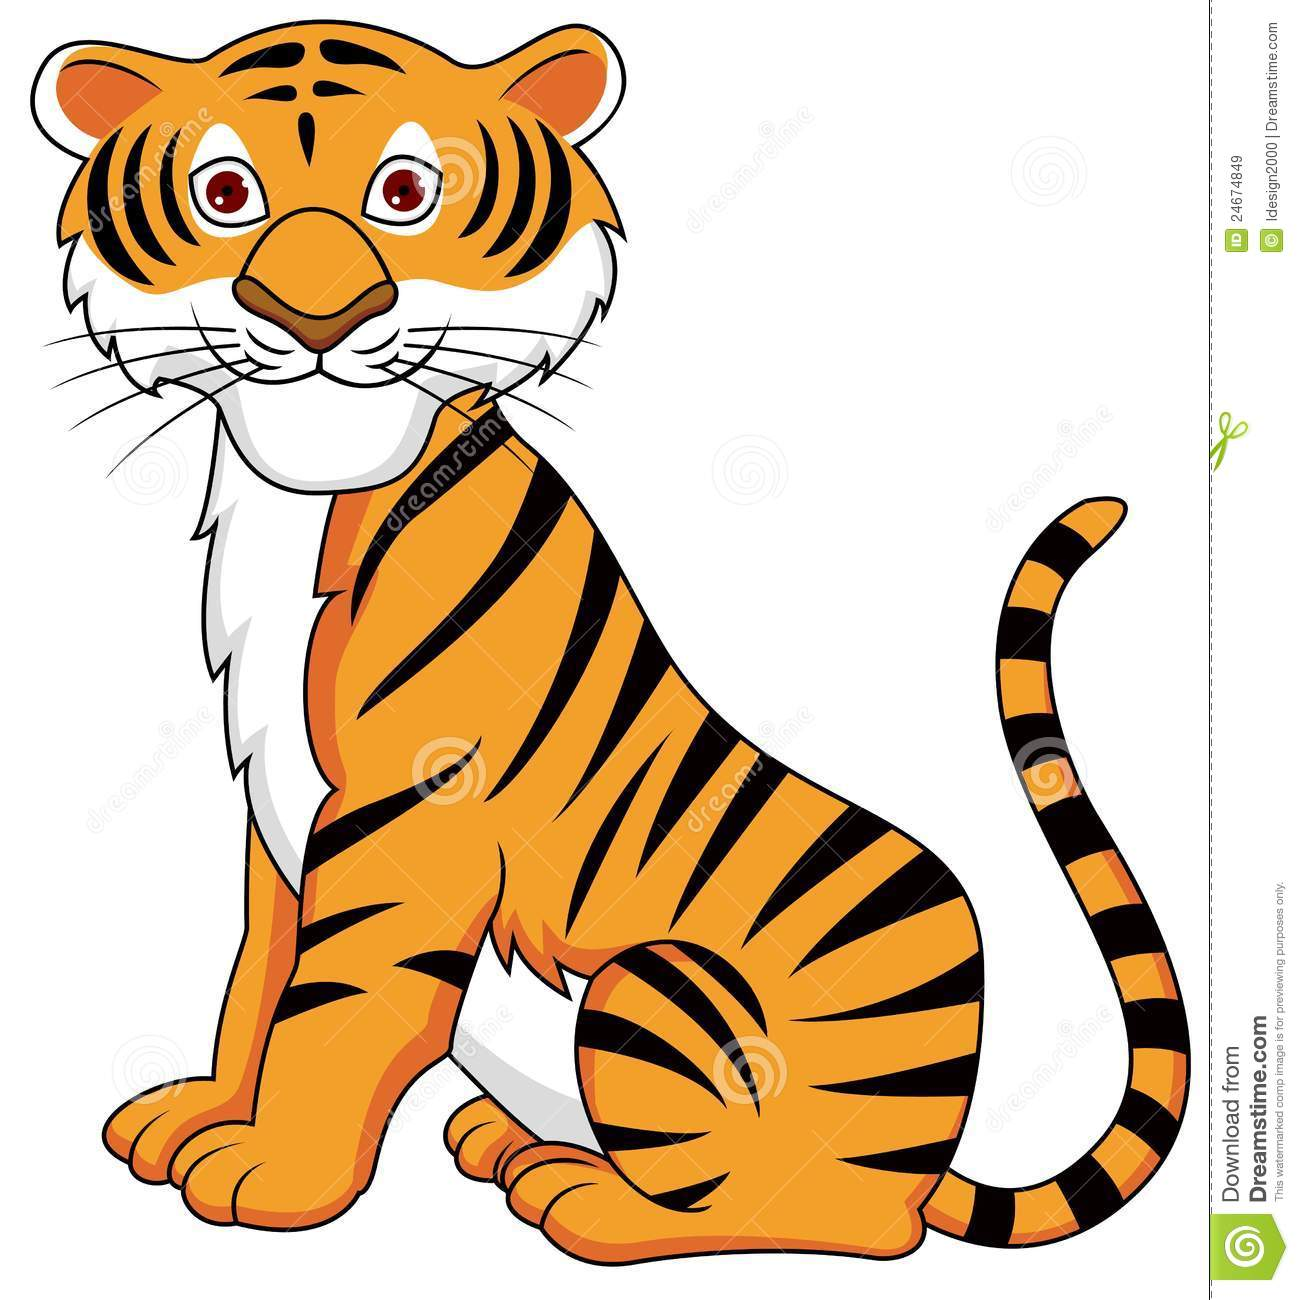 Tiiger clipart funny #4